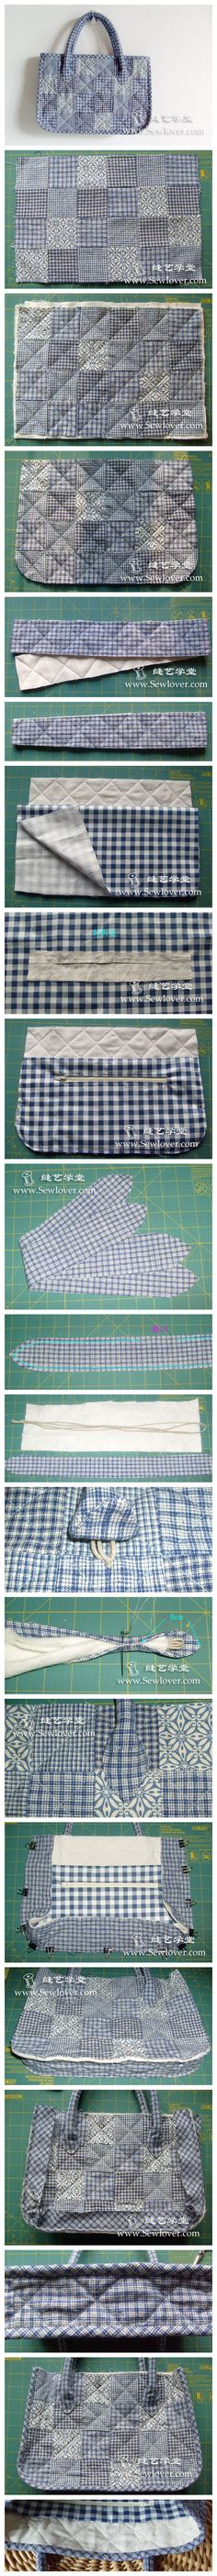 Patchwork bag instructions